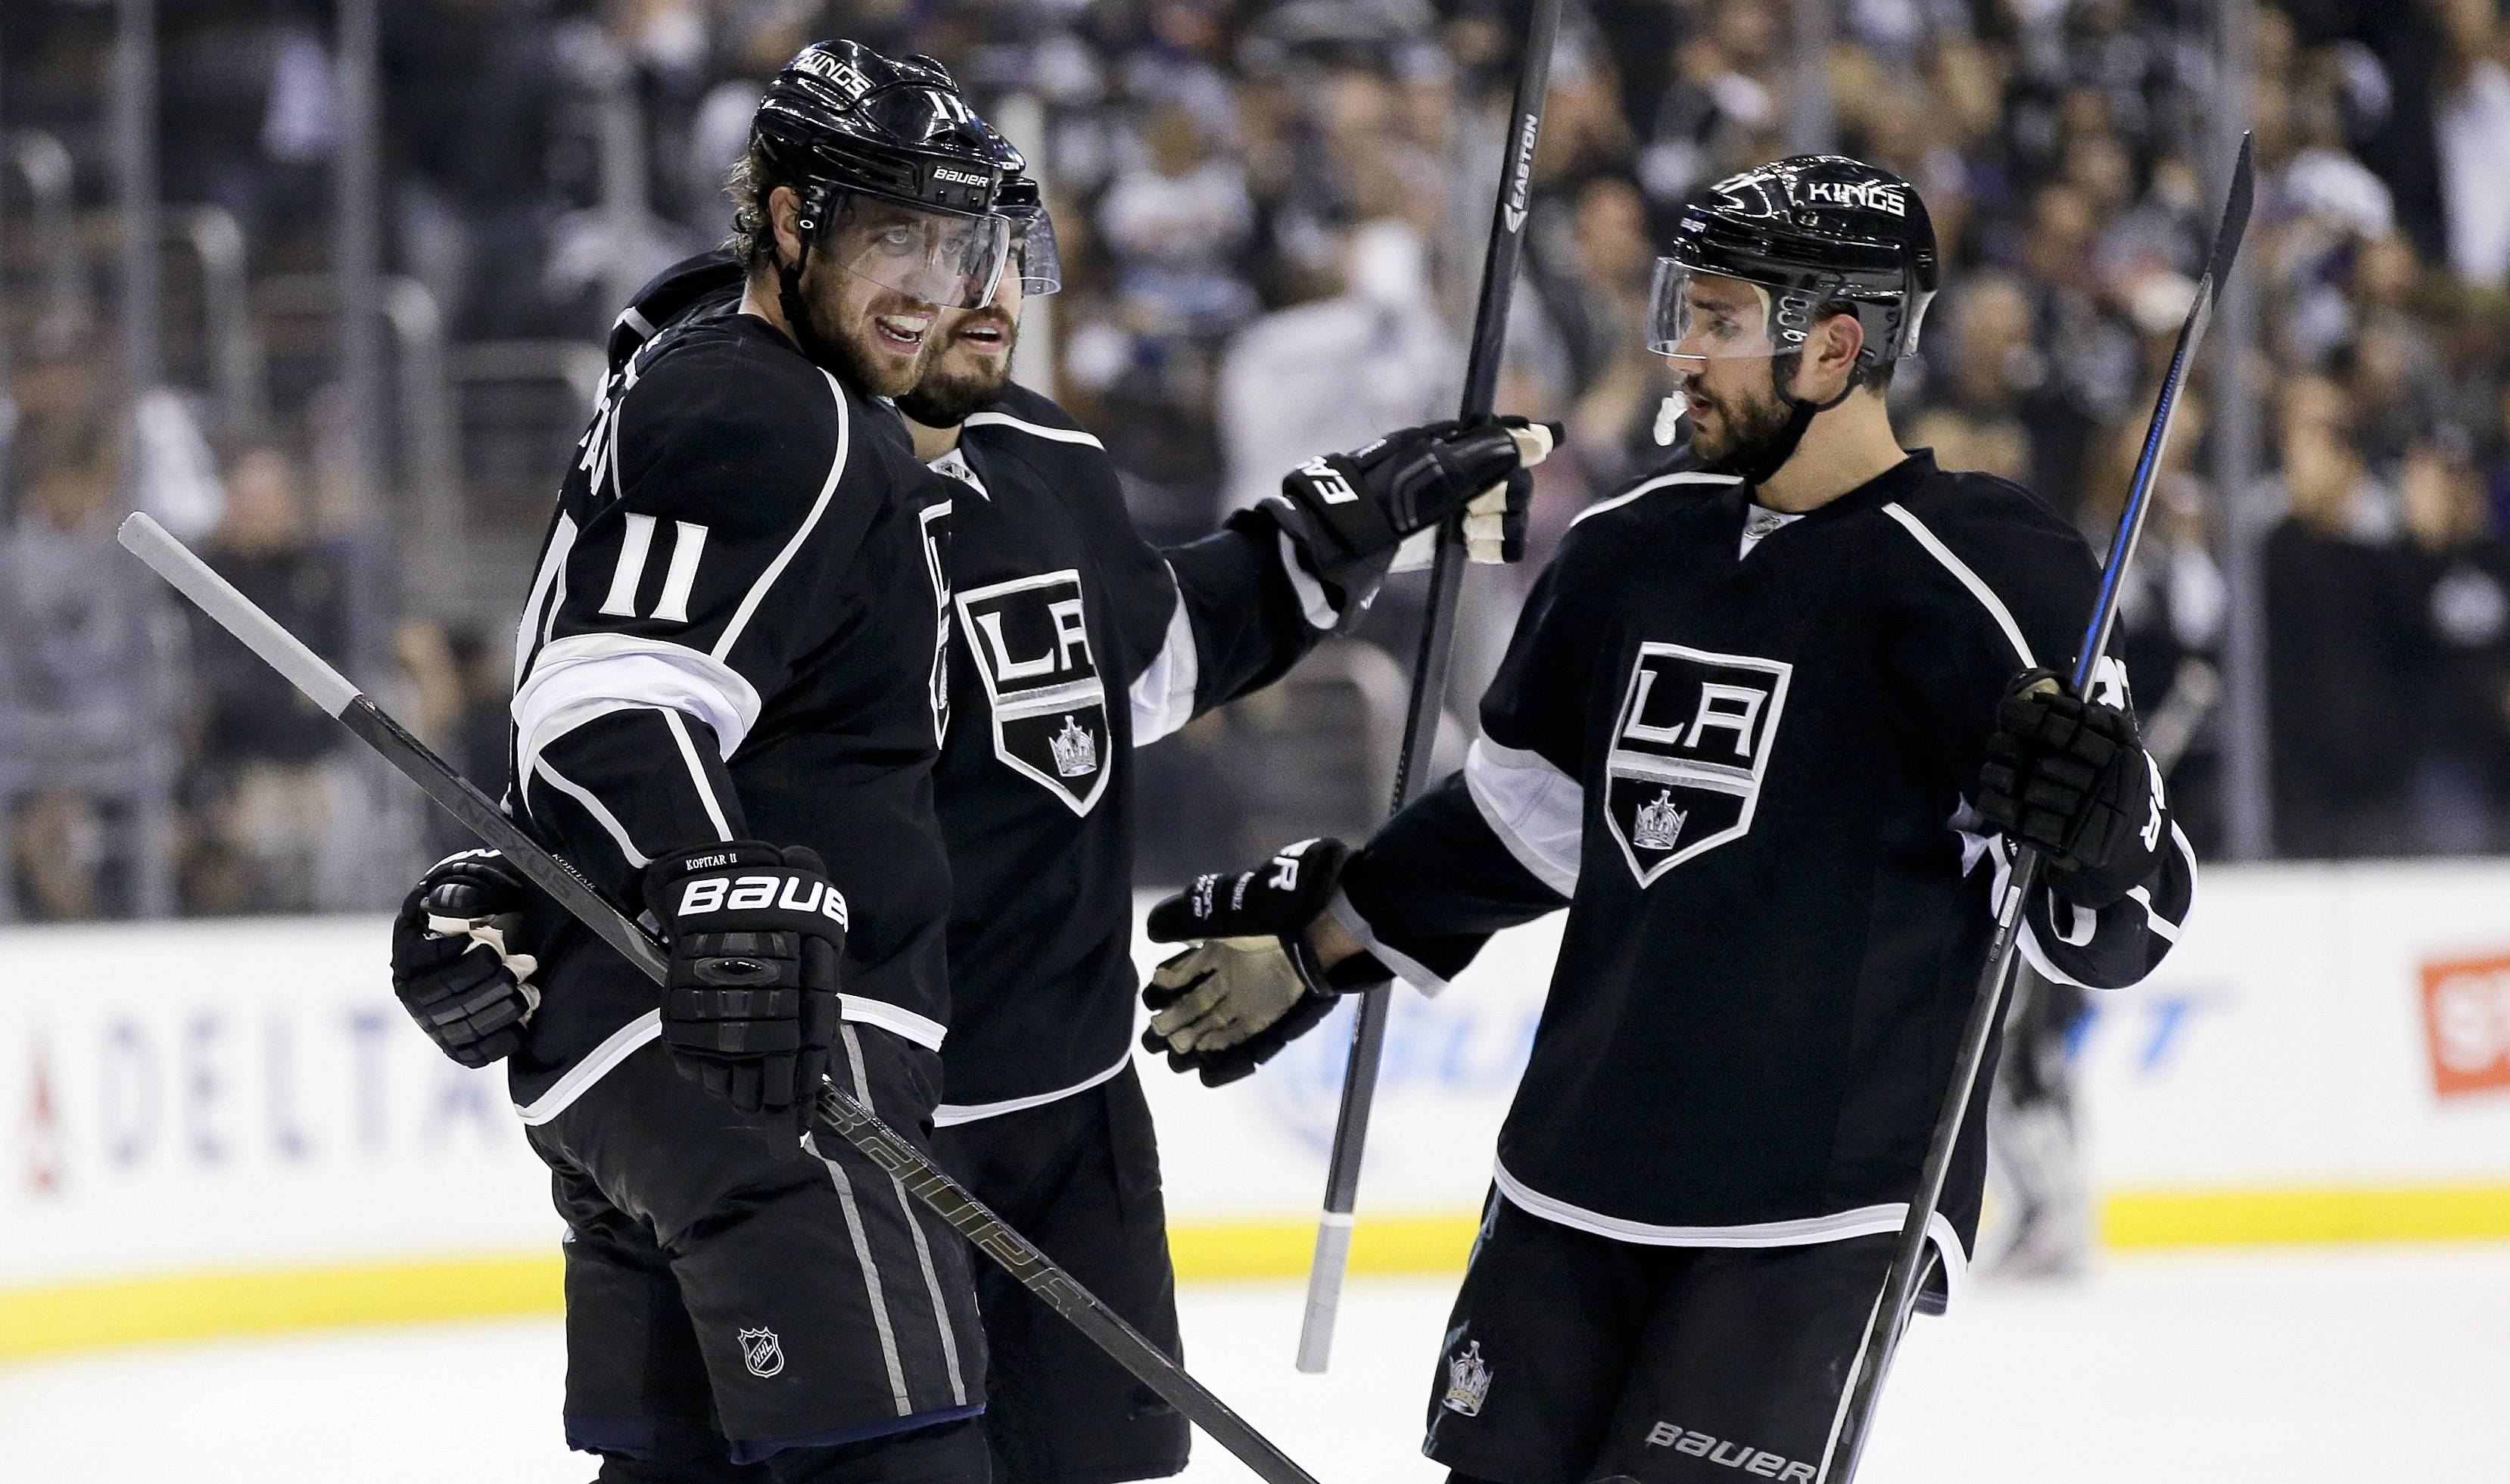 Los Angeles Kings defenseman Drew Doughty, middle, celebrates his goal against the Chicago Blackhawks with center Anze Kopitar, left, and defenseman Alec Martinez during the second period of Game 4 of the Western Conference finals of the NHL hockey Stanley Cup playoffs in Los Angeles, Monday, May 26, 2014.